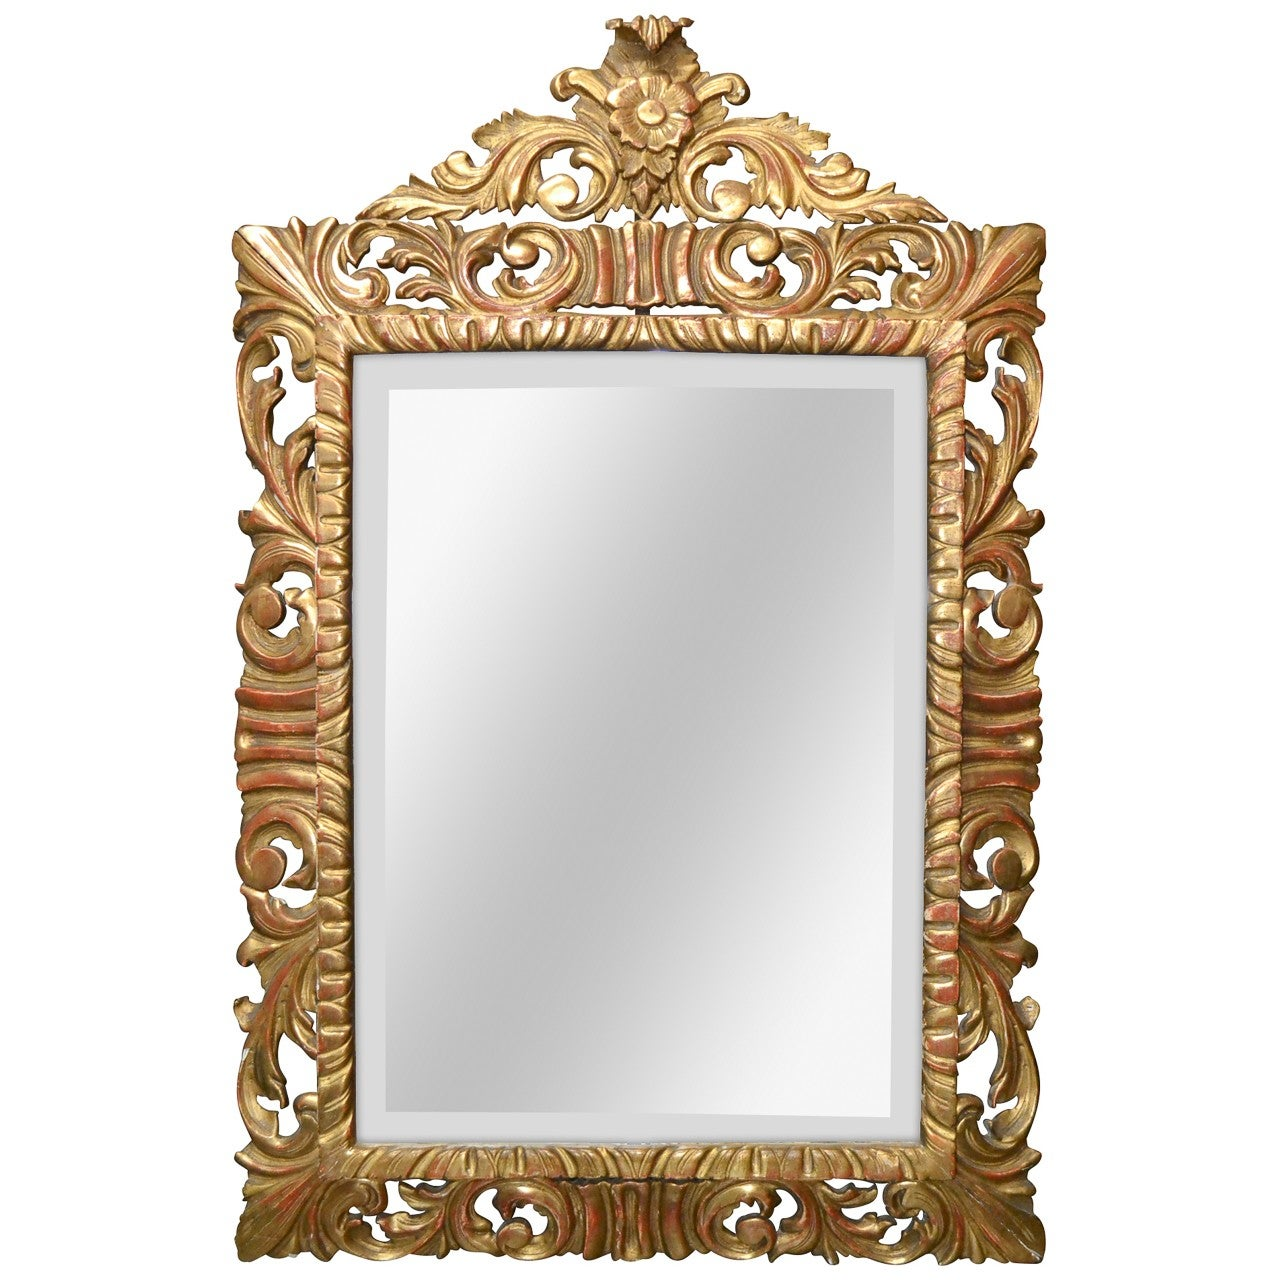 19th Century French Carved Giltwood Mirror